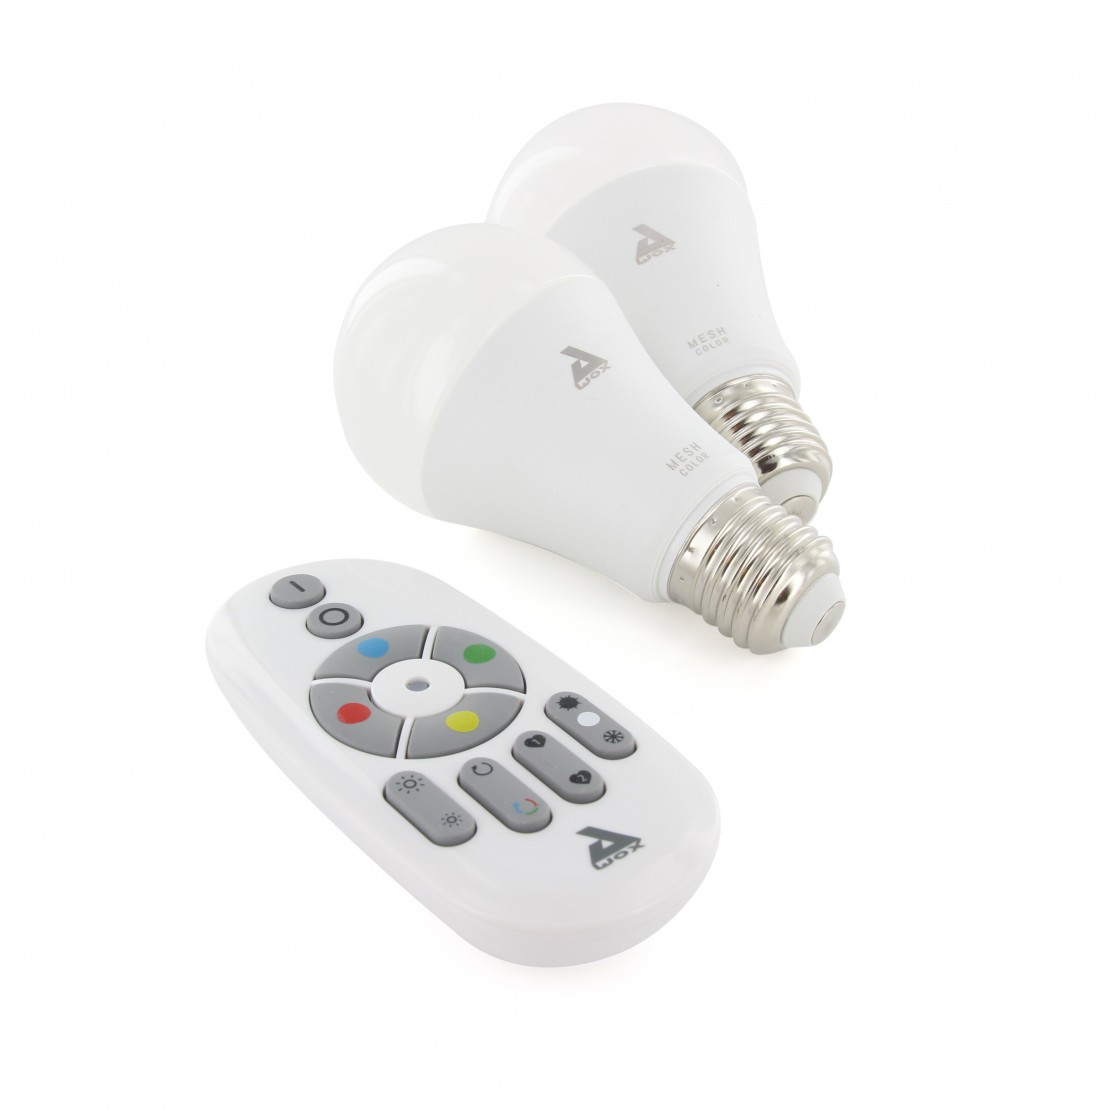 Set of 2 colour E27 Bluetooth Mesh bulbs and remote control